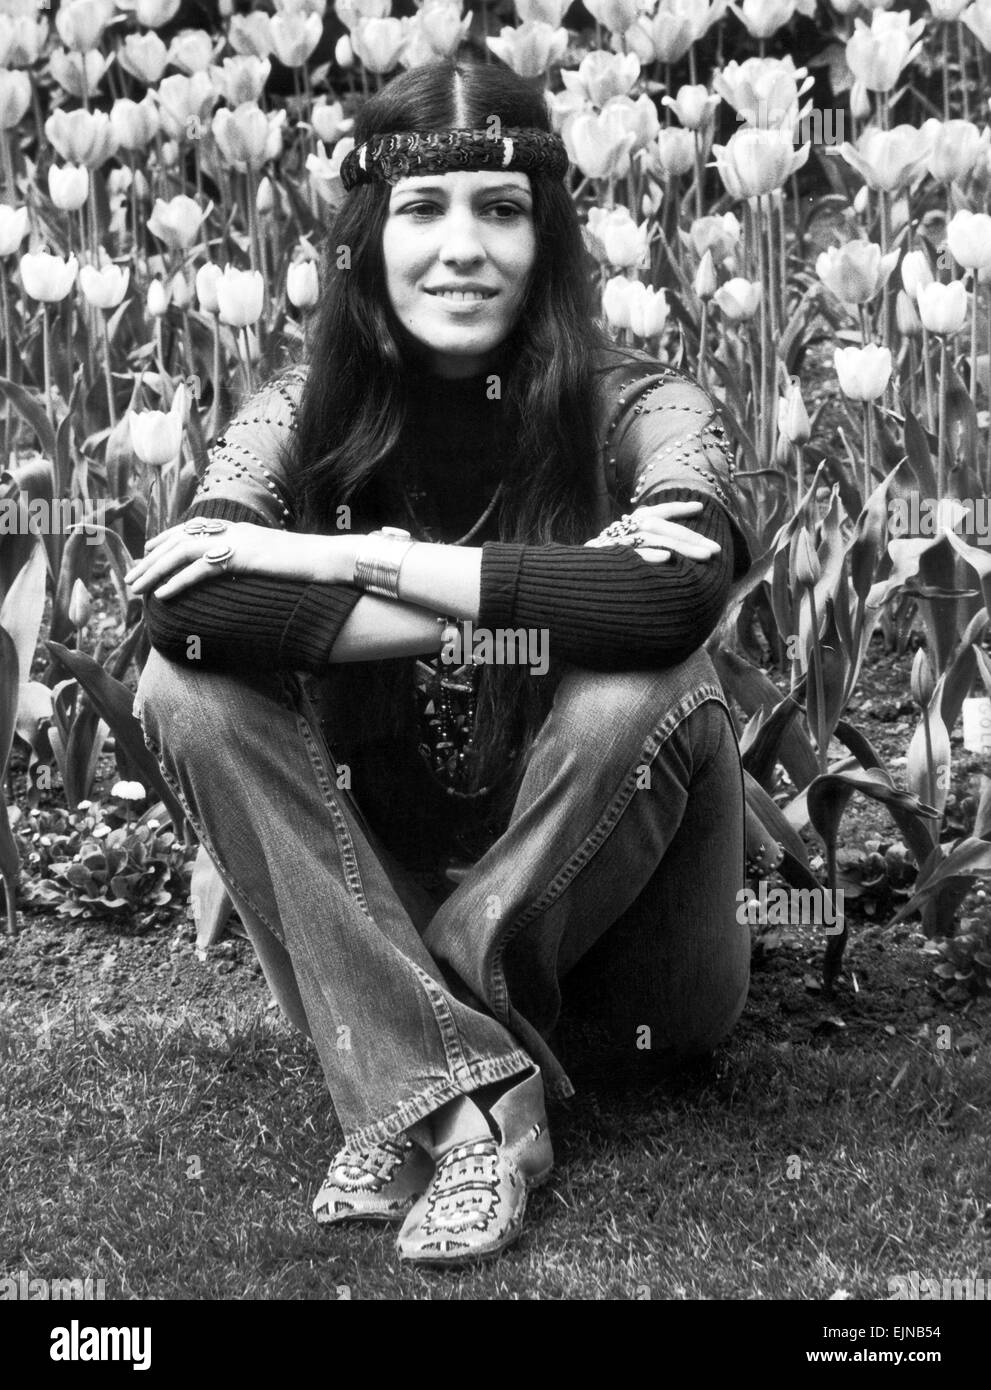 Rita Coolidge, in Regents Park, London, 5th May 1971. Stock Photo